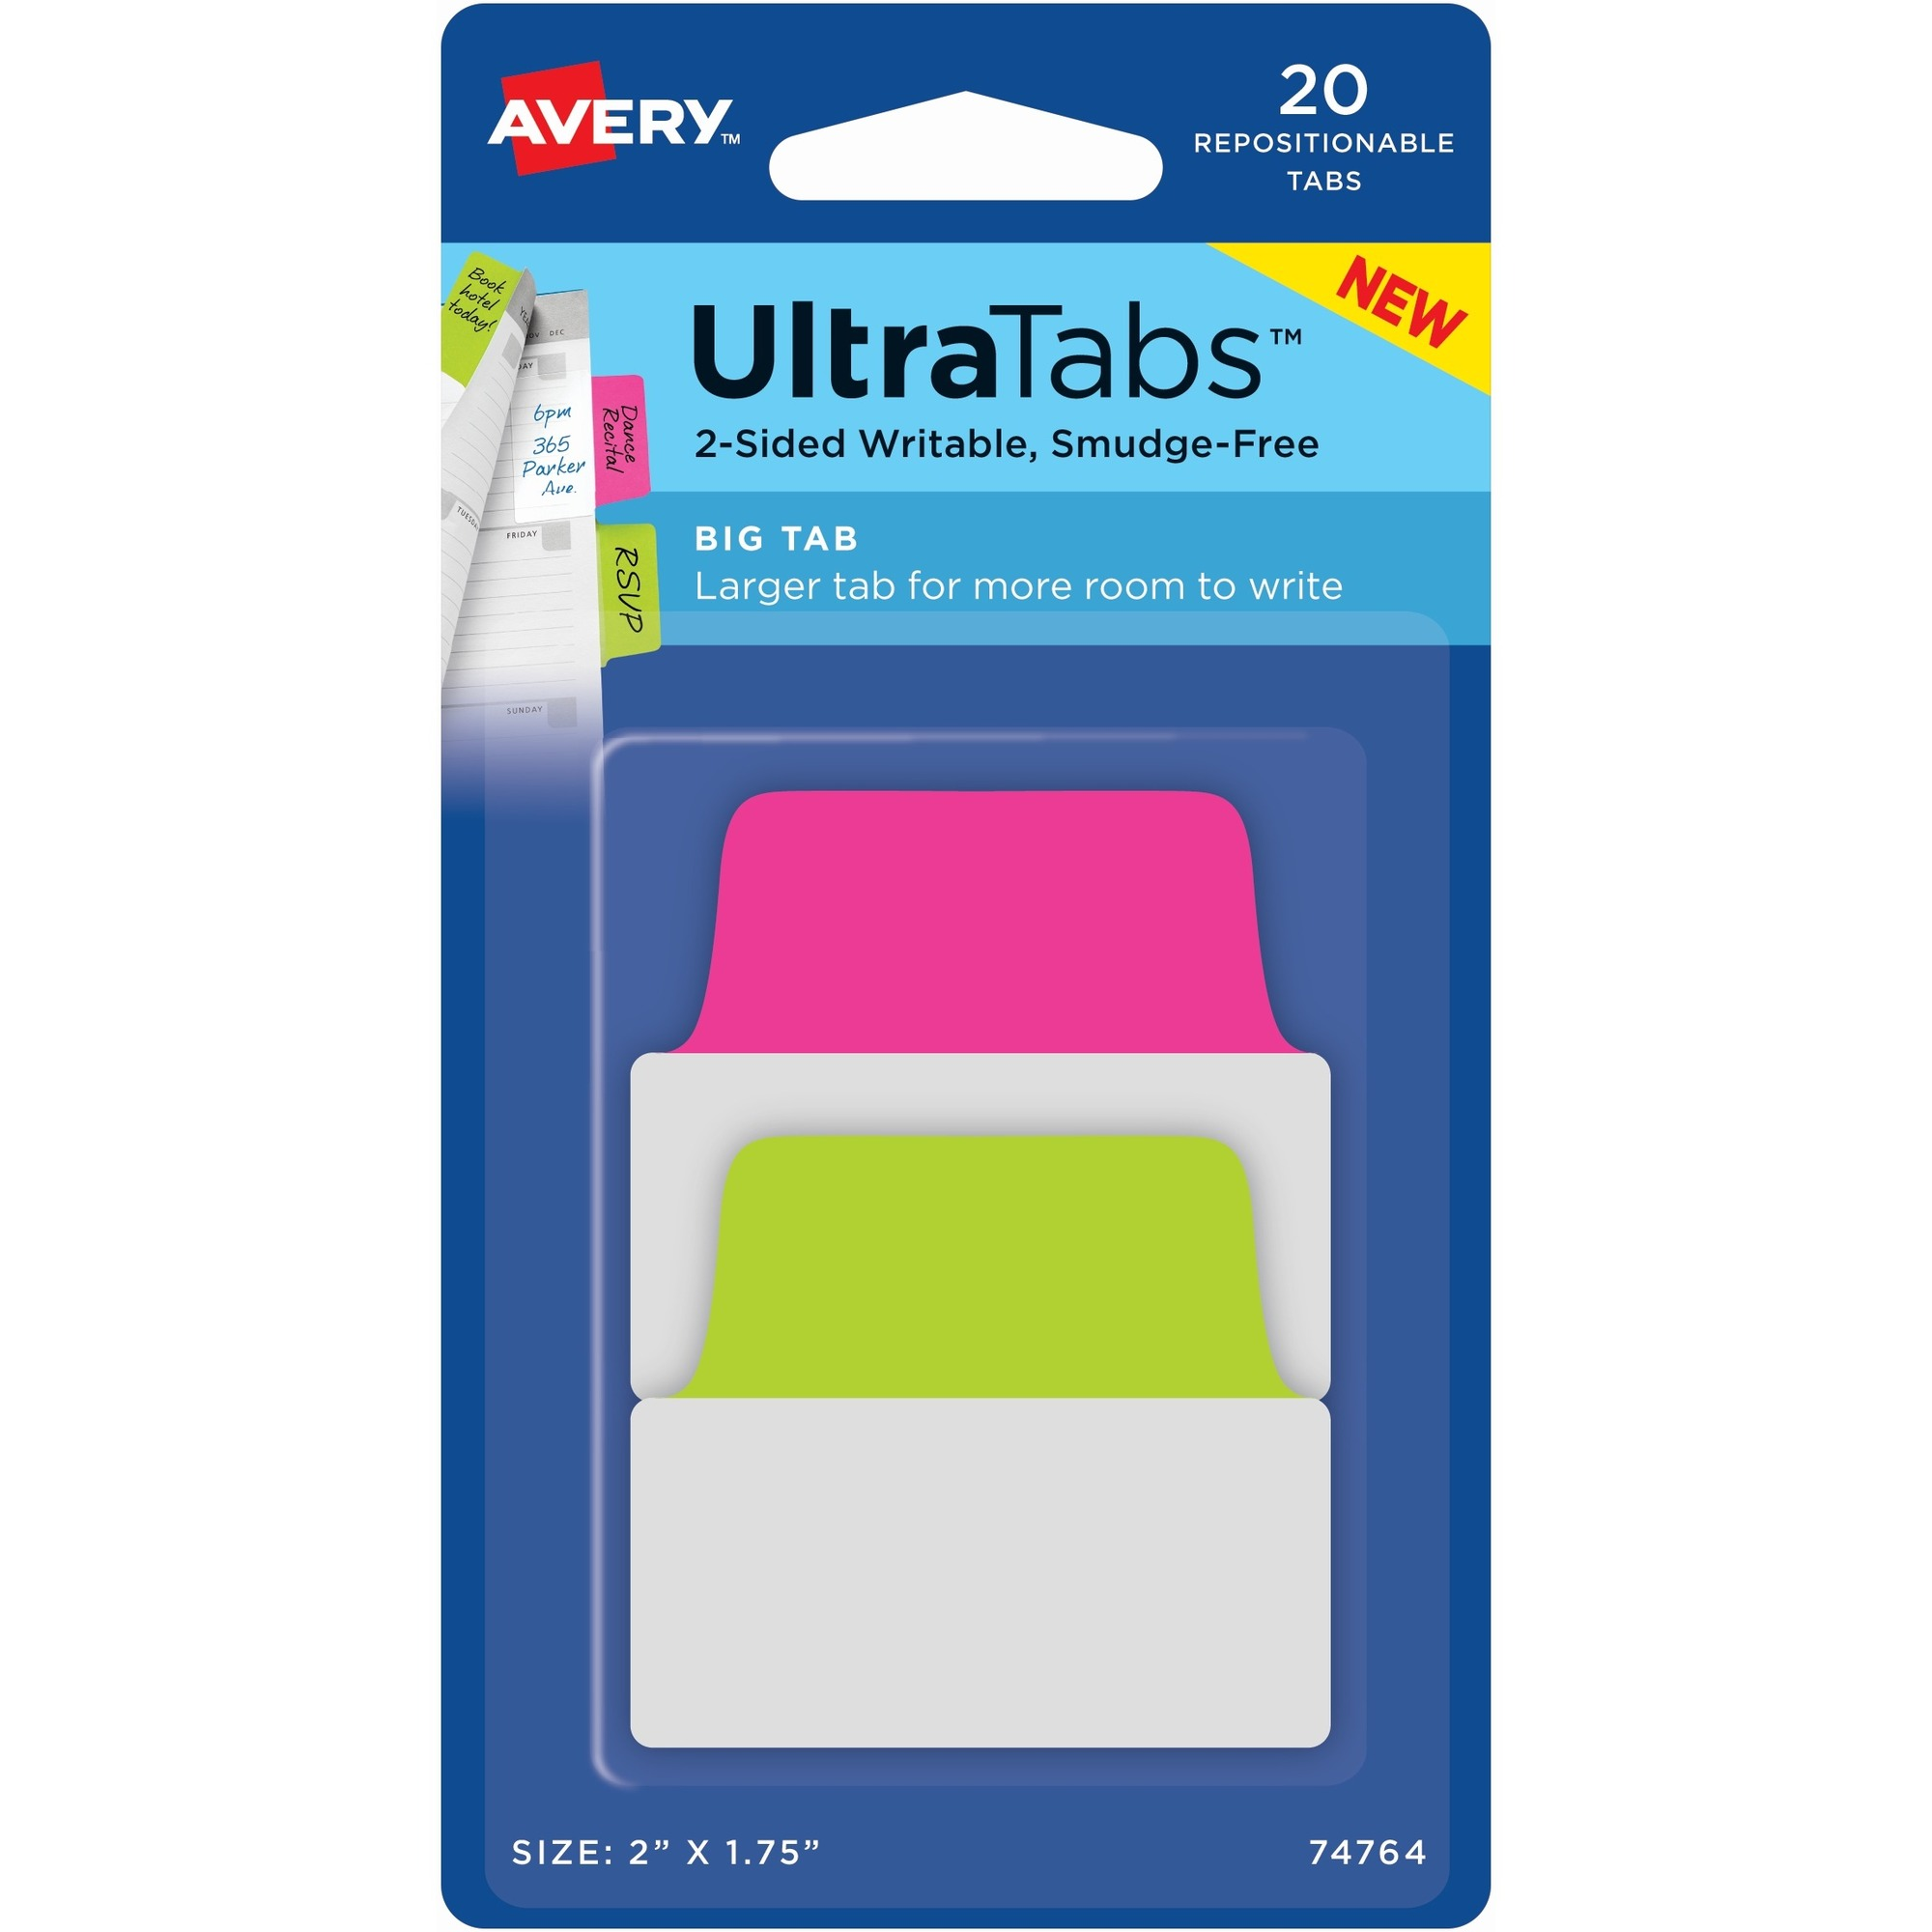 Avery UltraTabs Repositionable Big Tabs - Write-on Tab(s) - 1 75